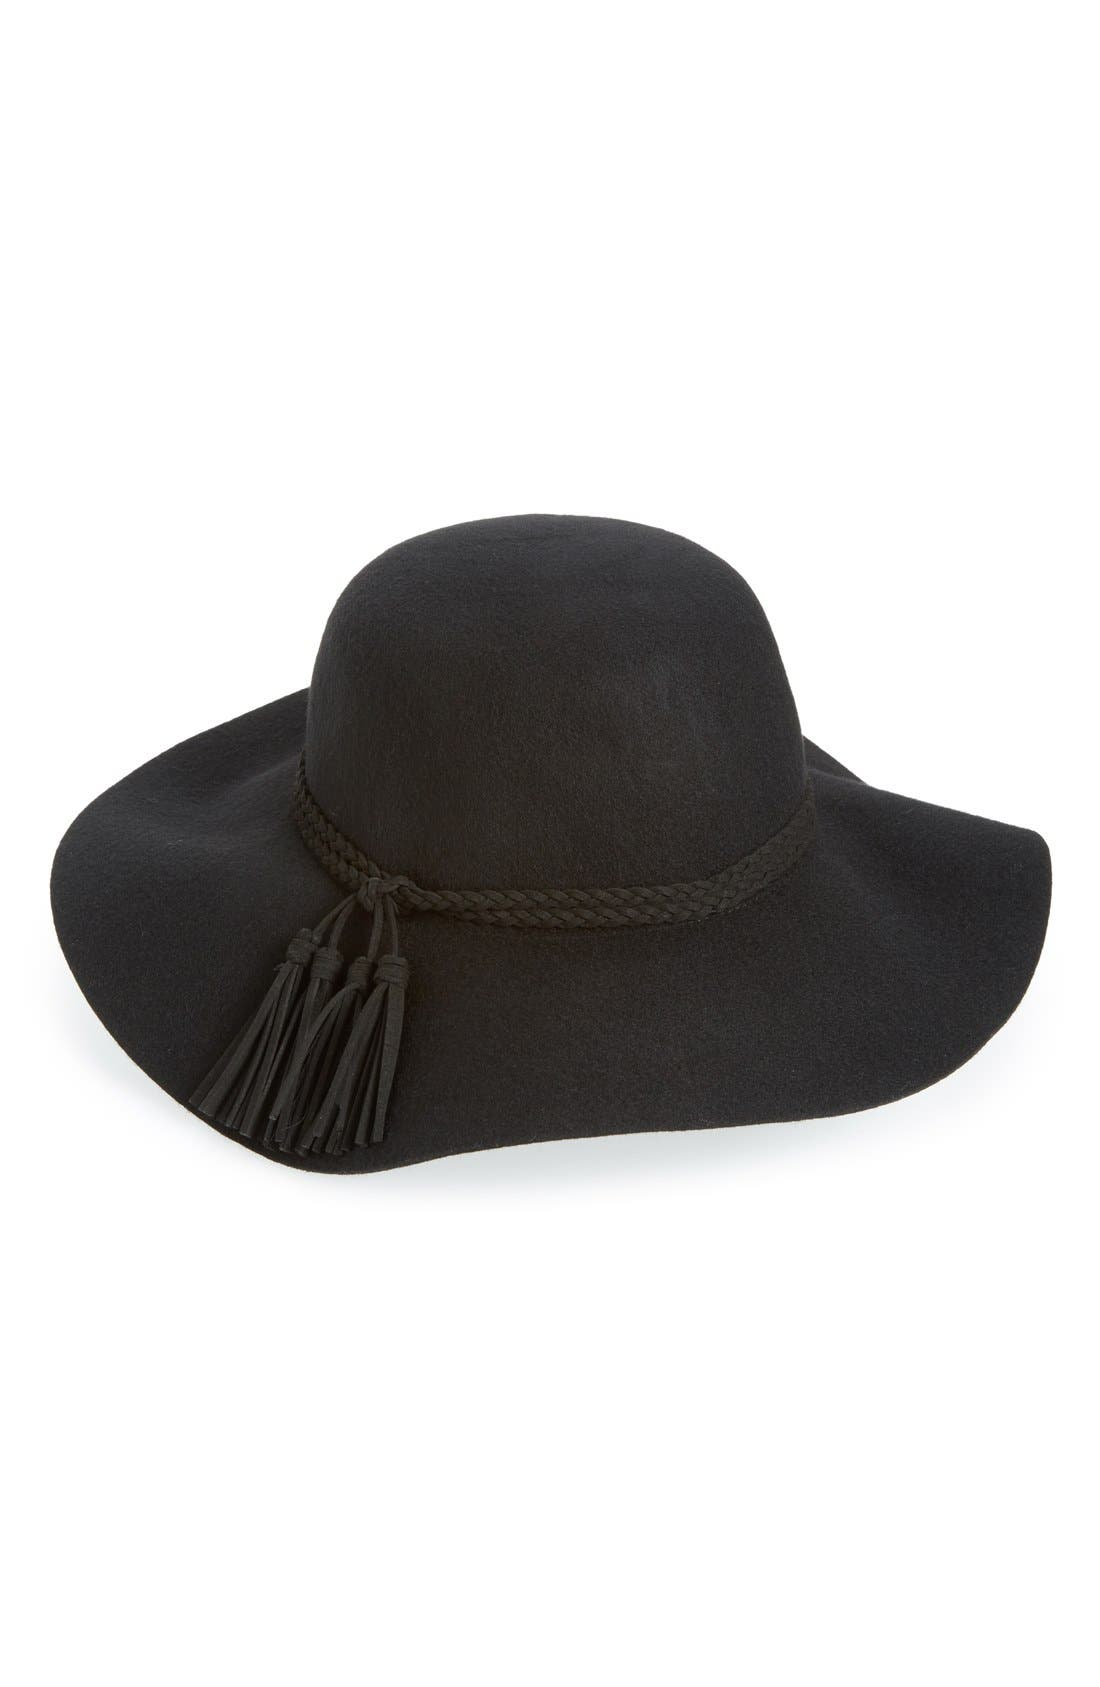 Alternate Image 1 Selected - Phase 3 Tassel Band Floppy Hat